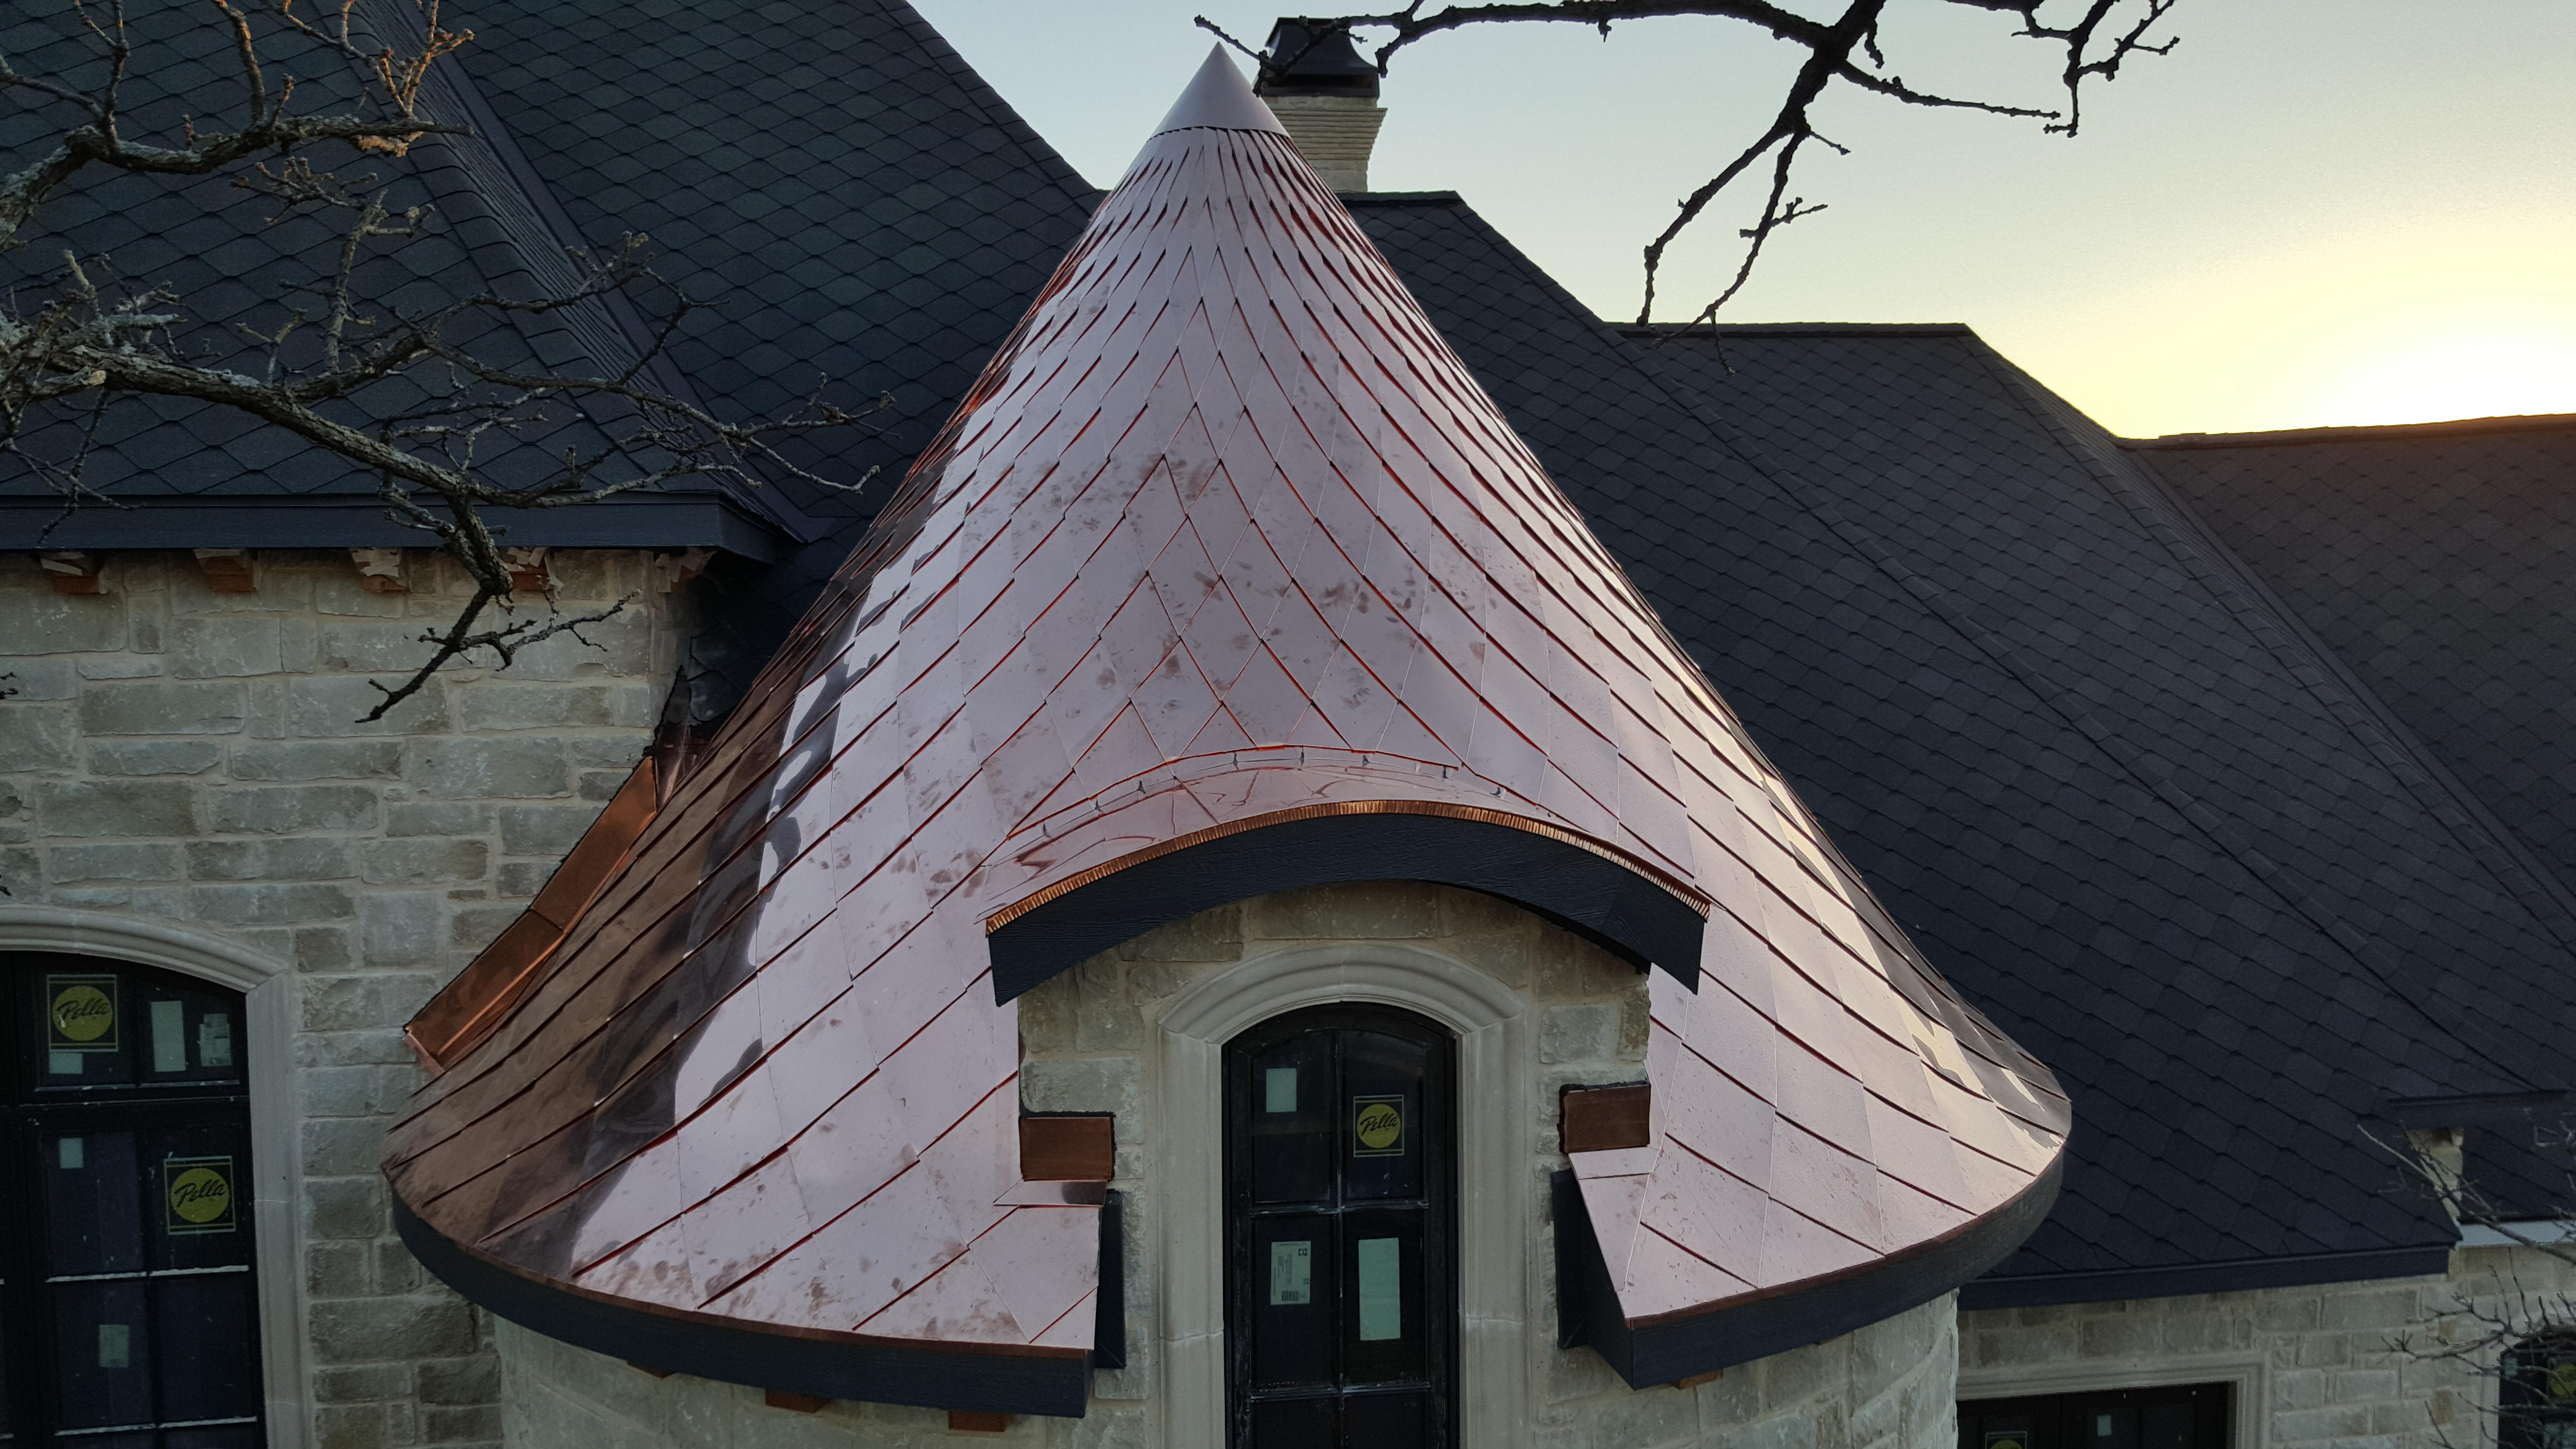 Brinkmann Quality Roofing Services image 2